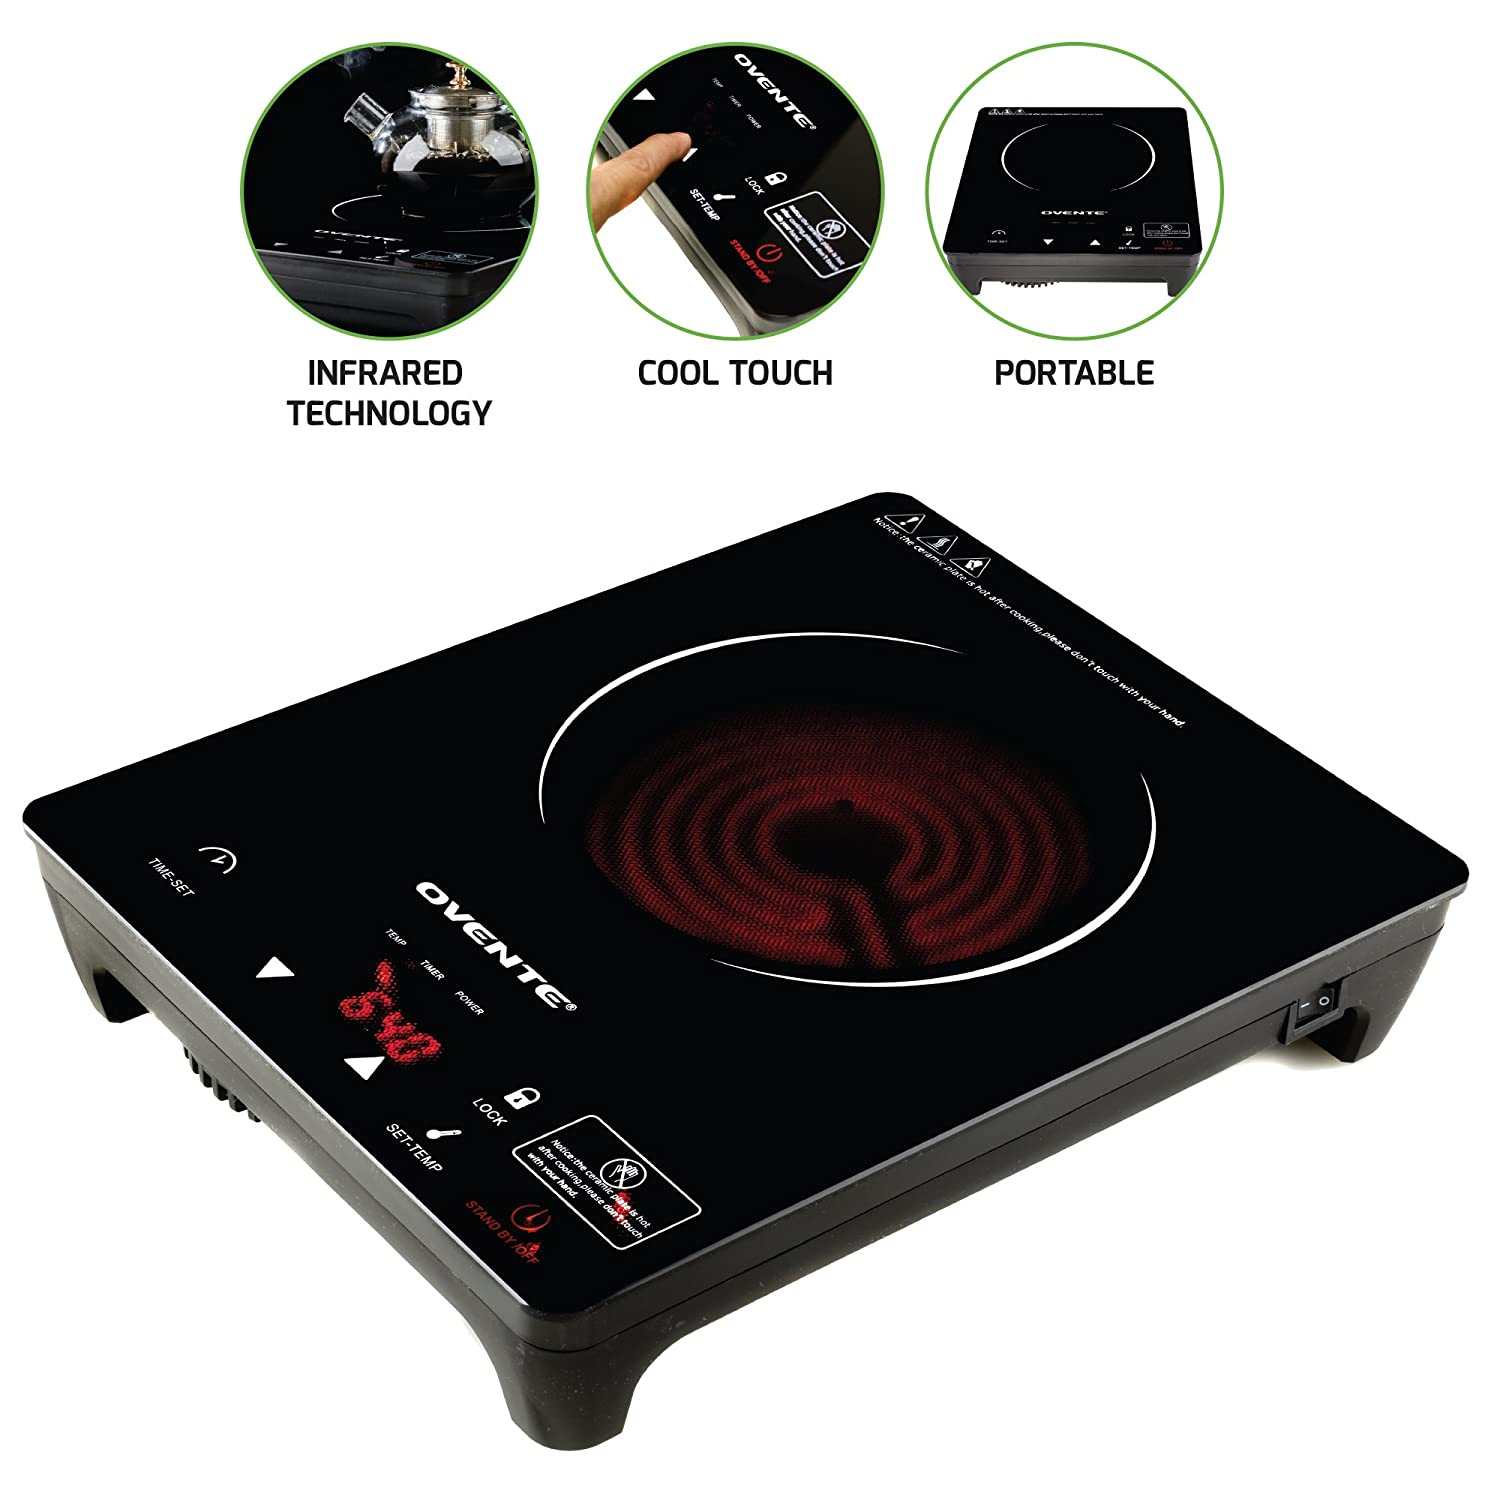 Ovente BG44S Portable Ceramic Infrared Cooktop, Black DAFI by Ruby Compass